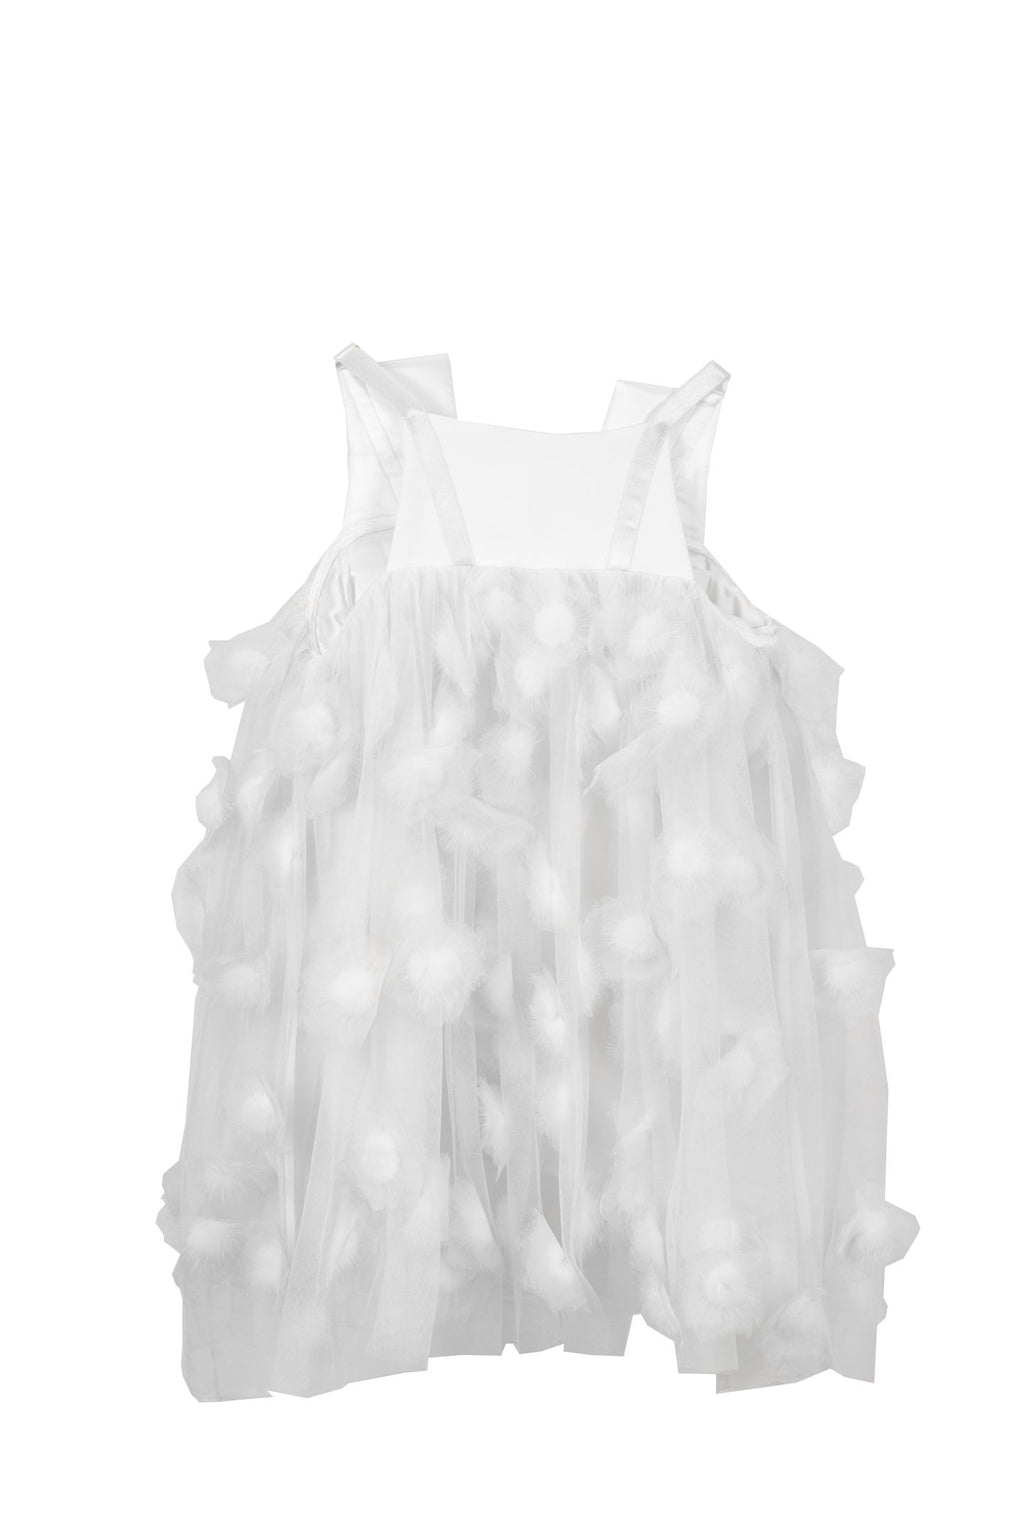 Maticevski - Paloma Mink Dot Dress White  Cream Kids